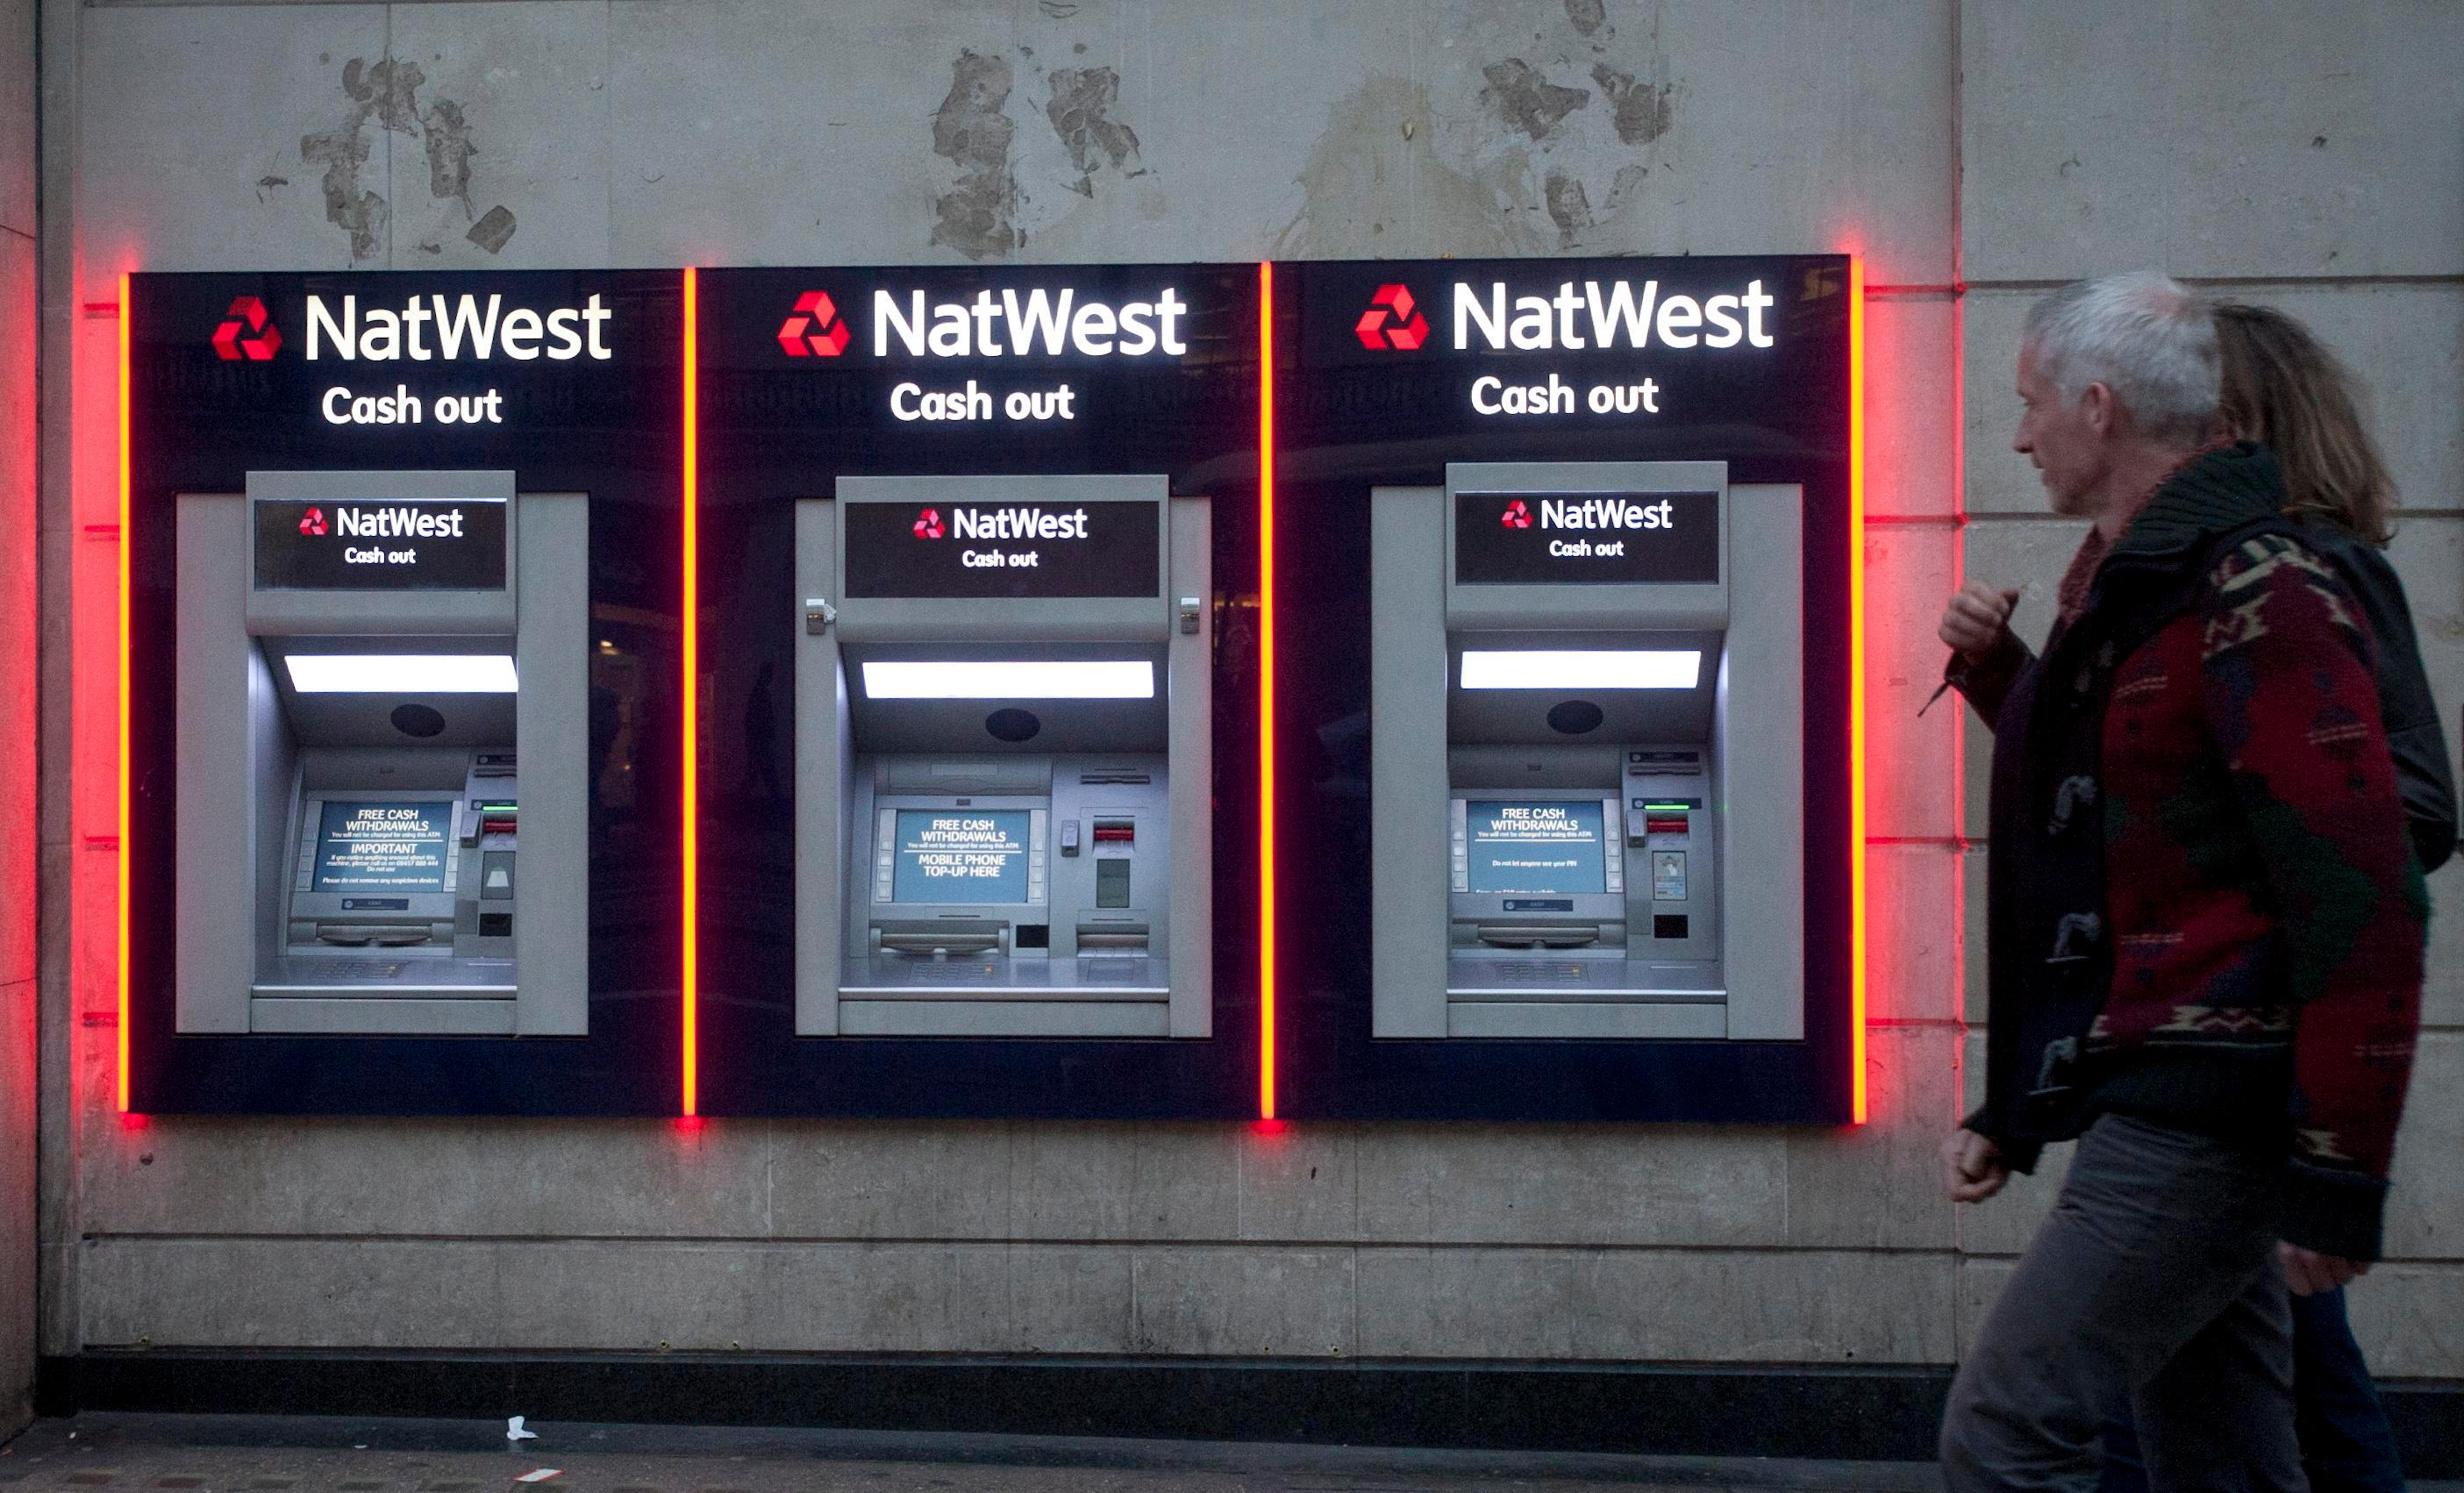 Natwest brings back £150 current account switching bonus – here's how to get it